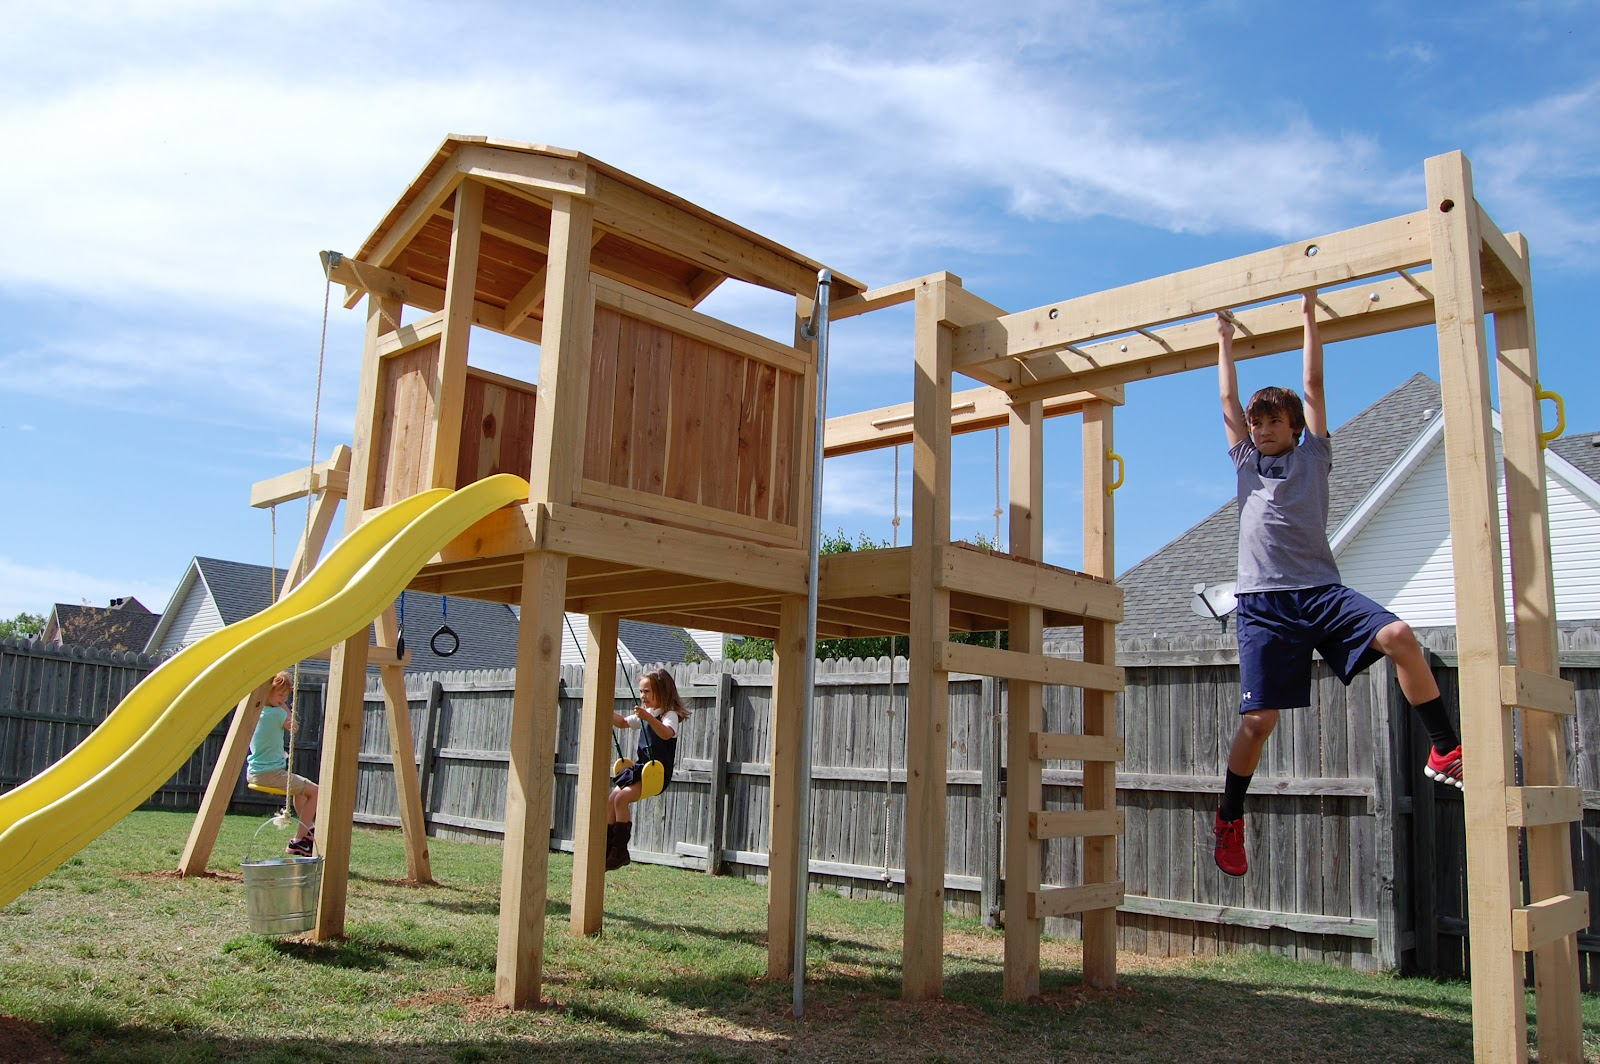 natural state treehouses inc nichols family playset